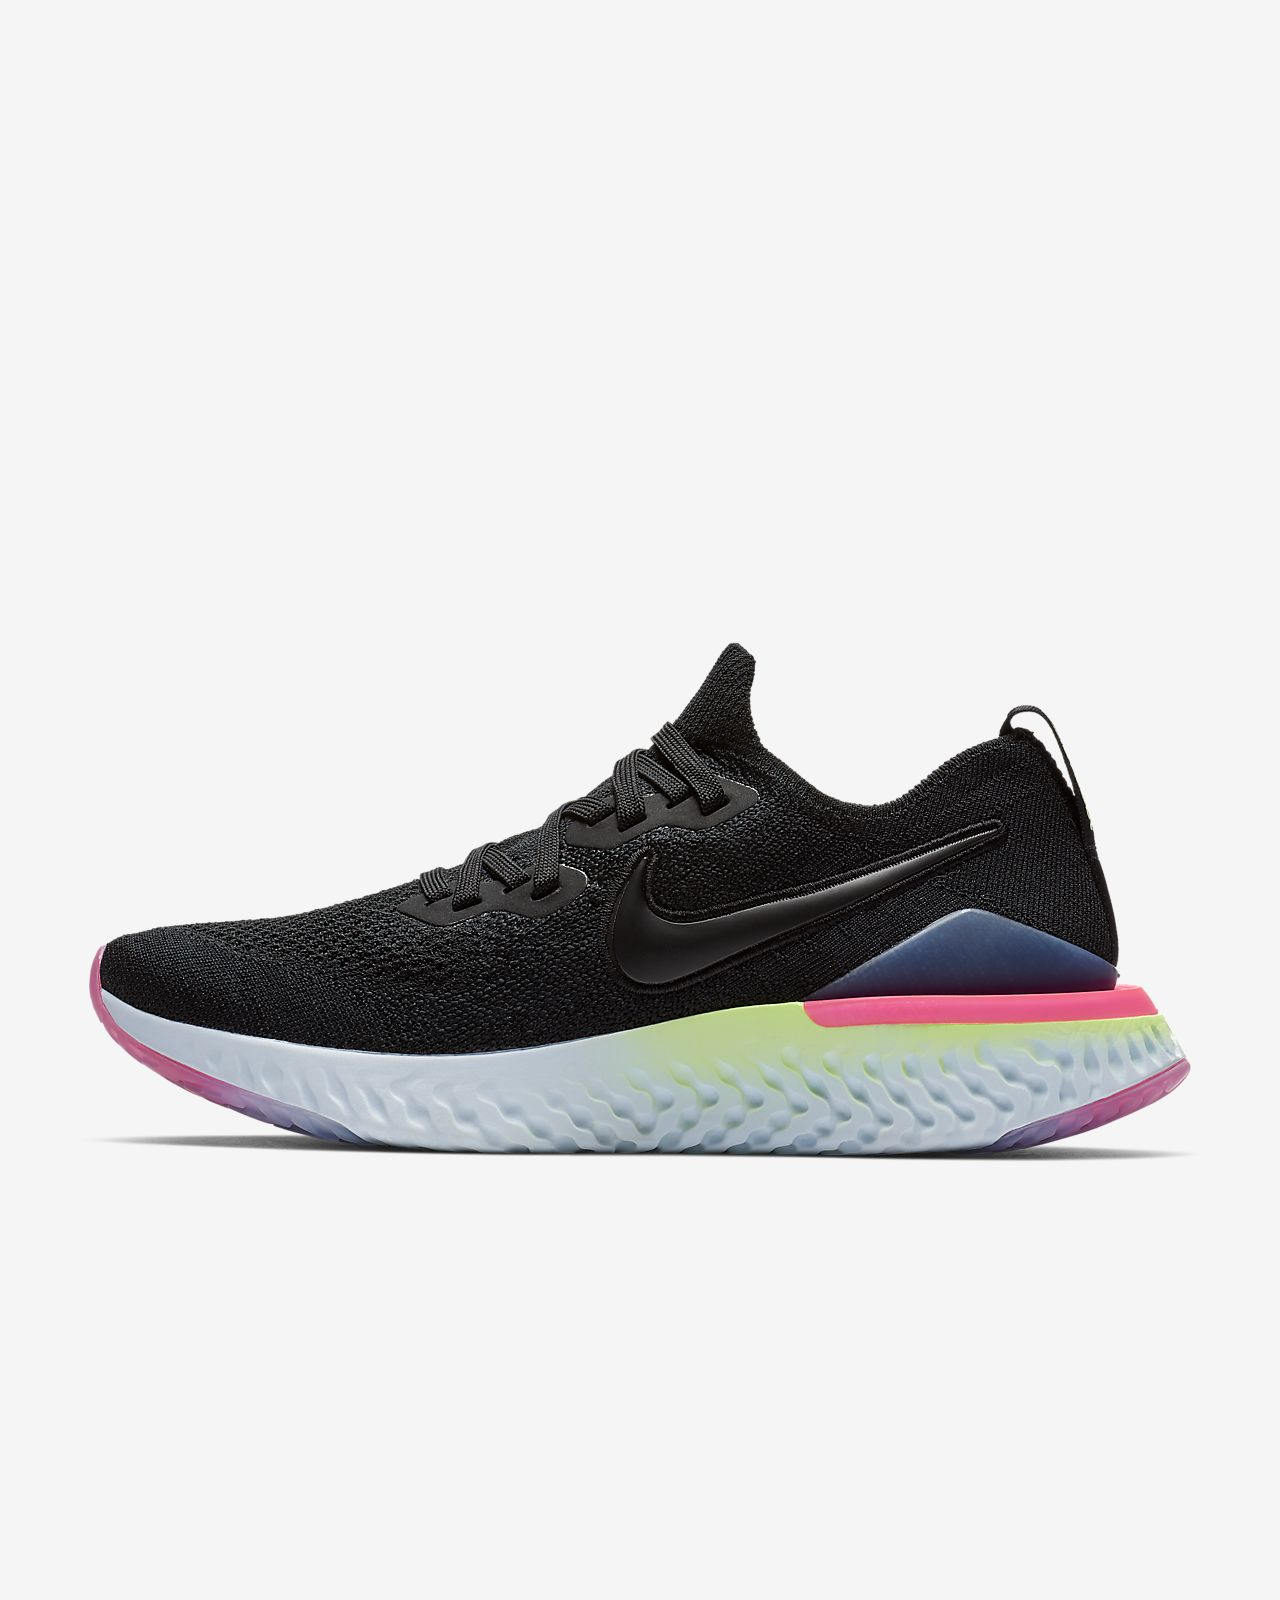 235d198fa2963 Nike Epic React Flyknit 2 Women s Running Shoe. Nike.com